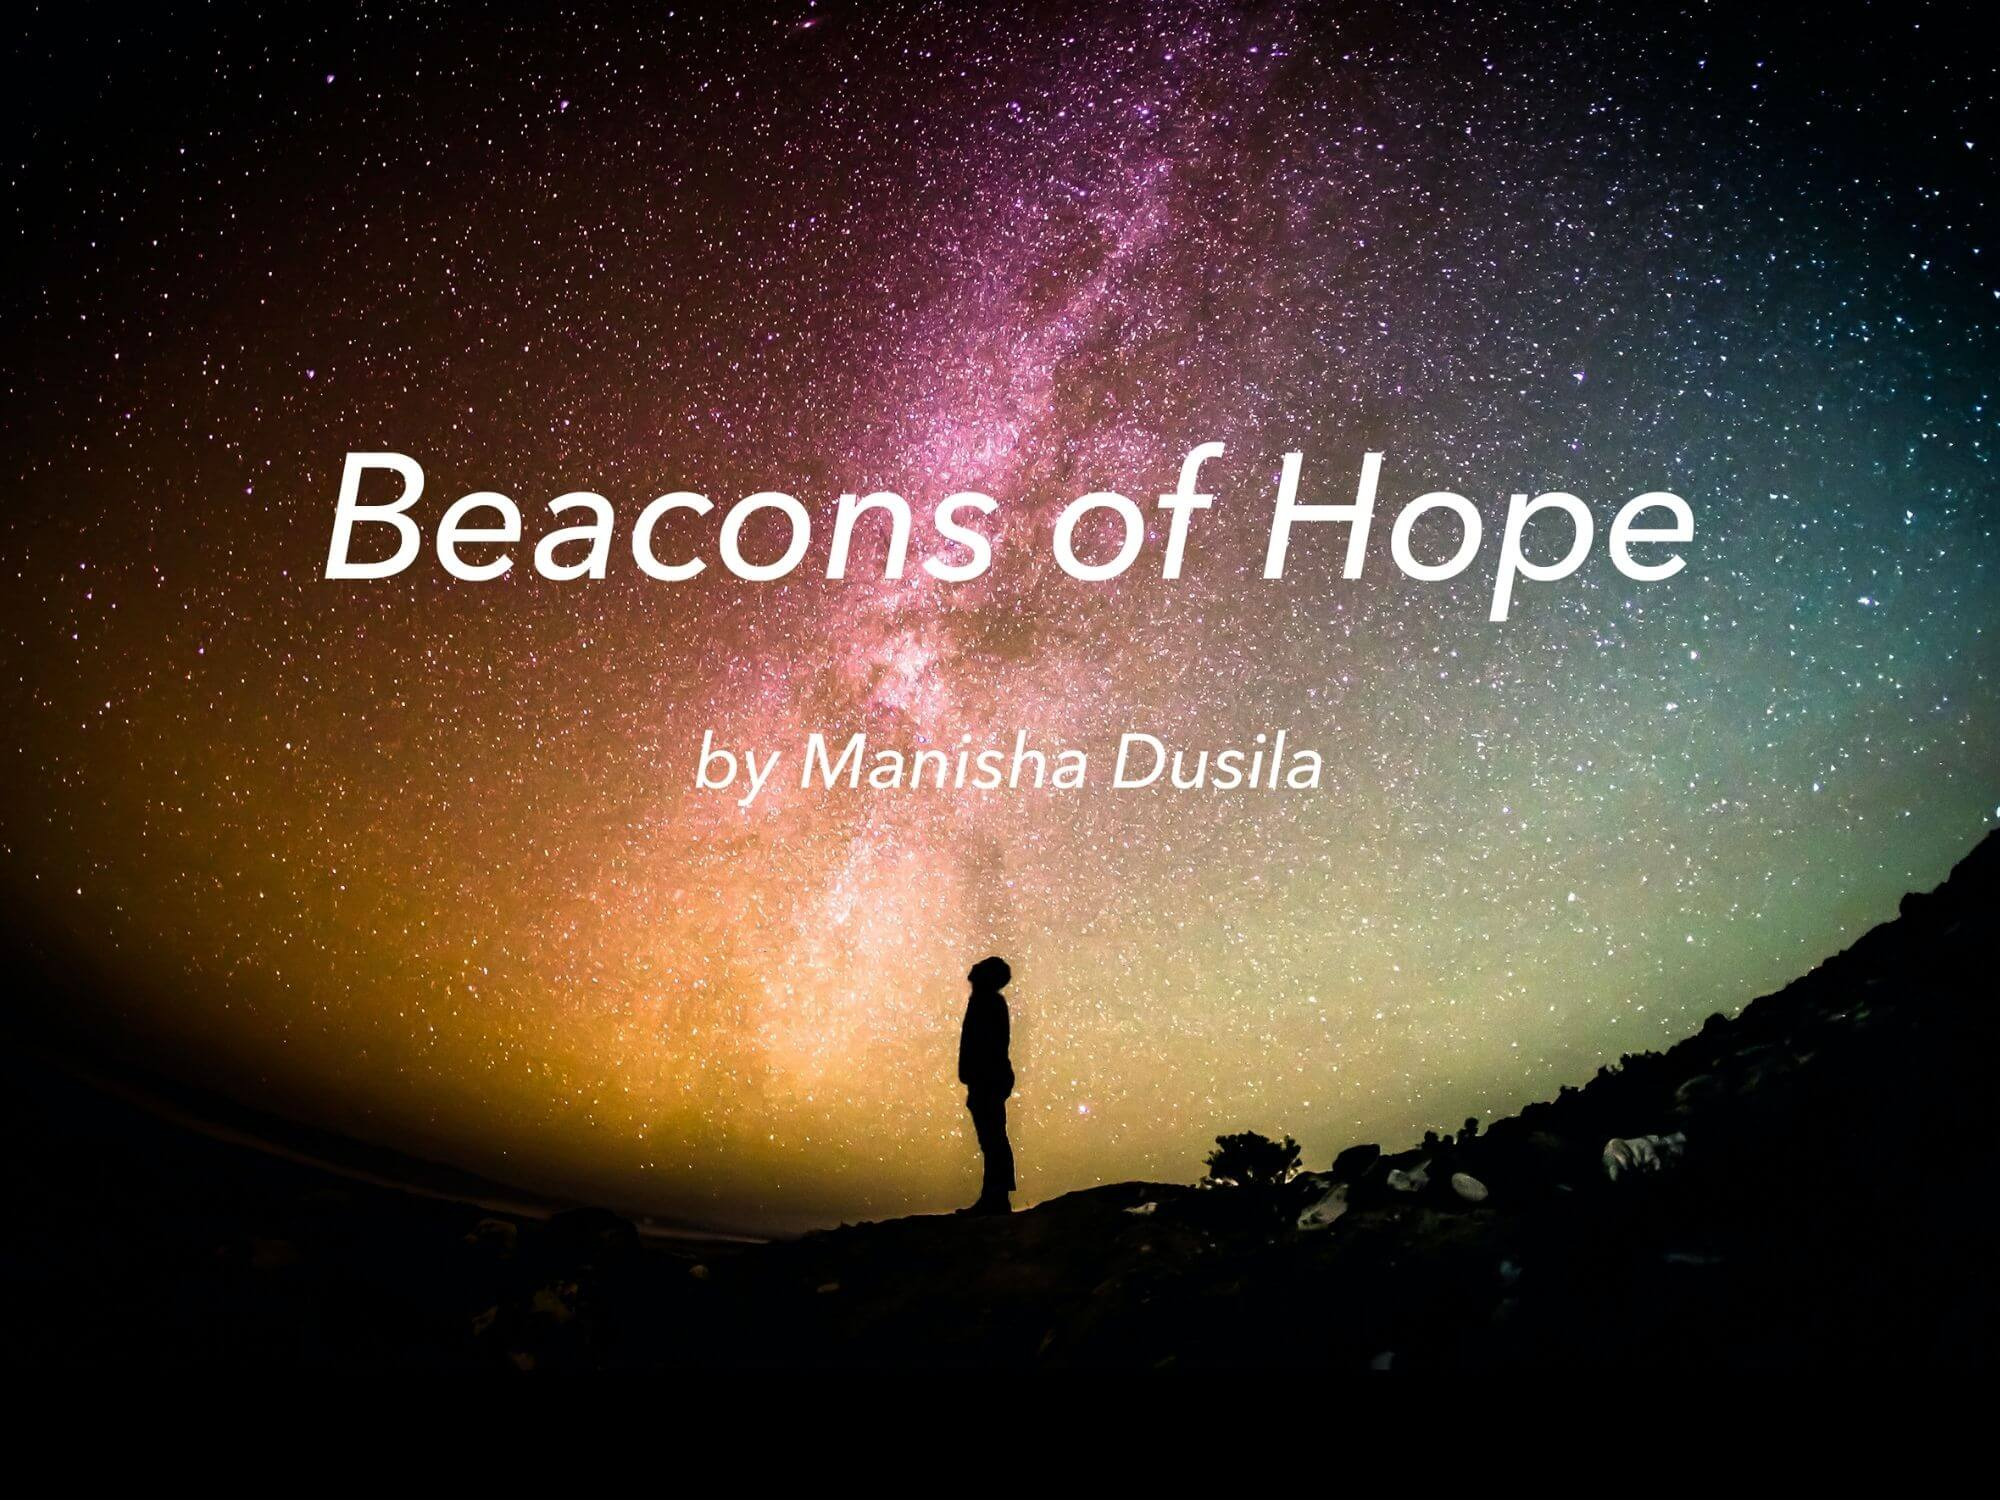 Beacons of Hope by Manisha Dusila